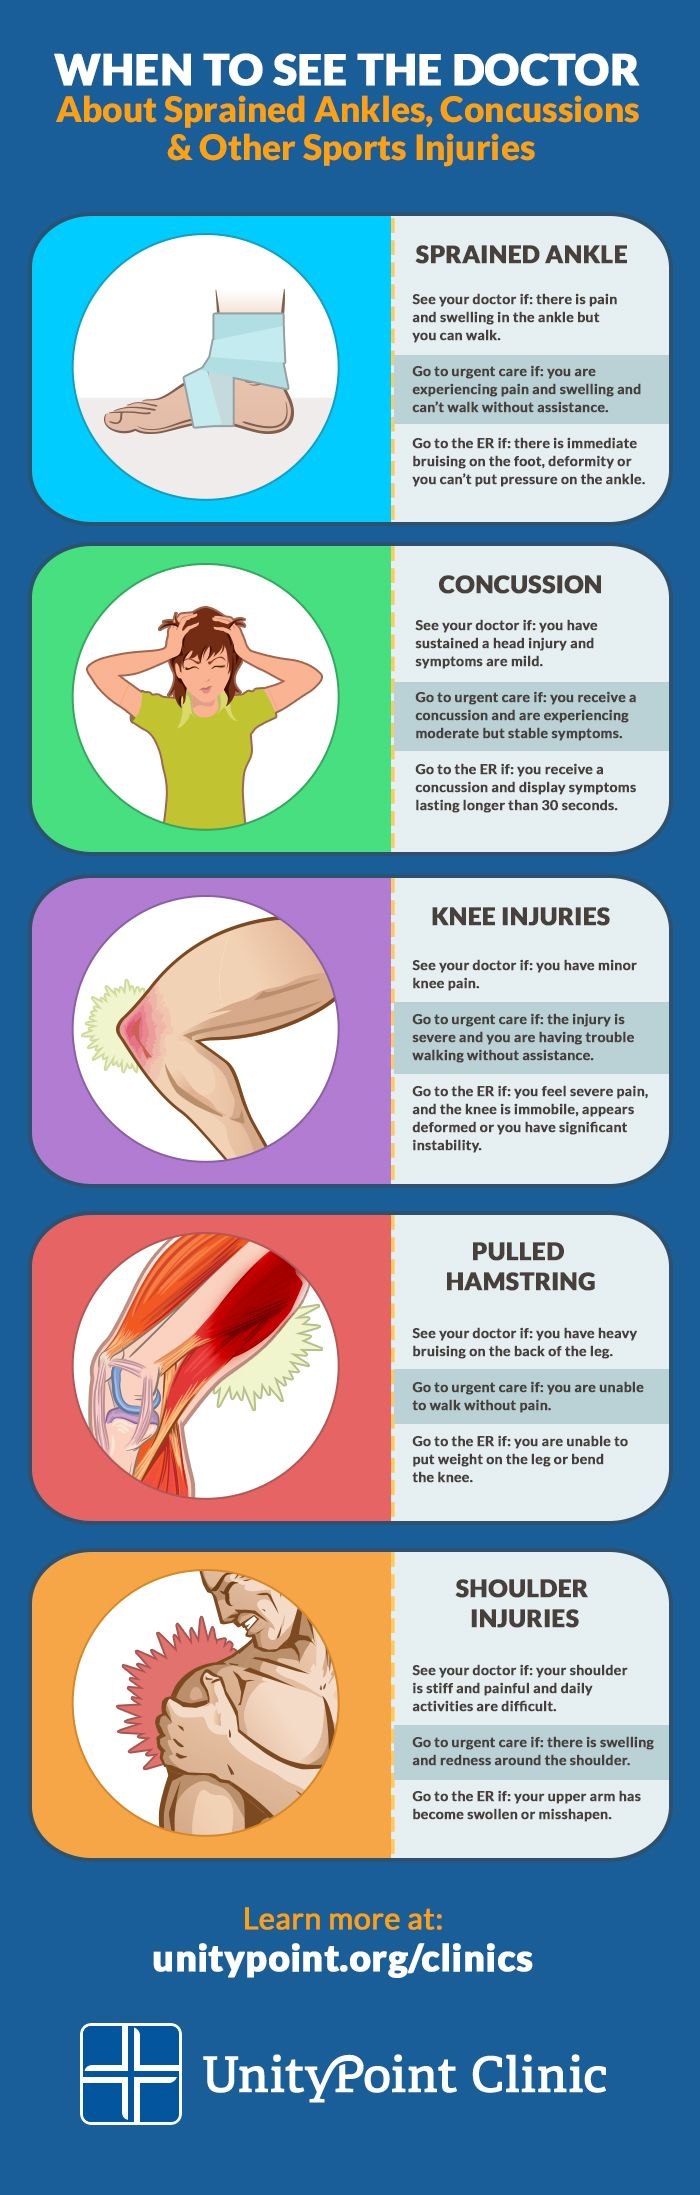 Sports injuries are common among athletes, but do you know